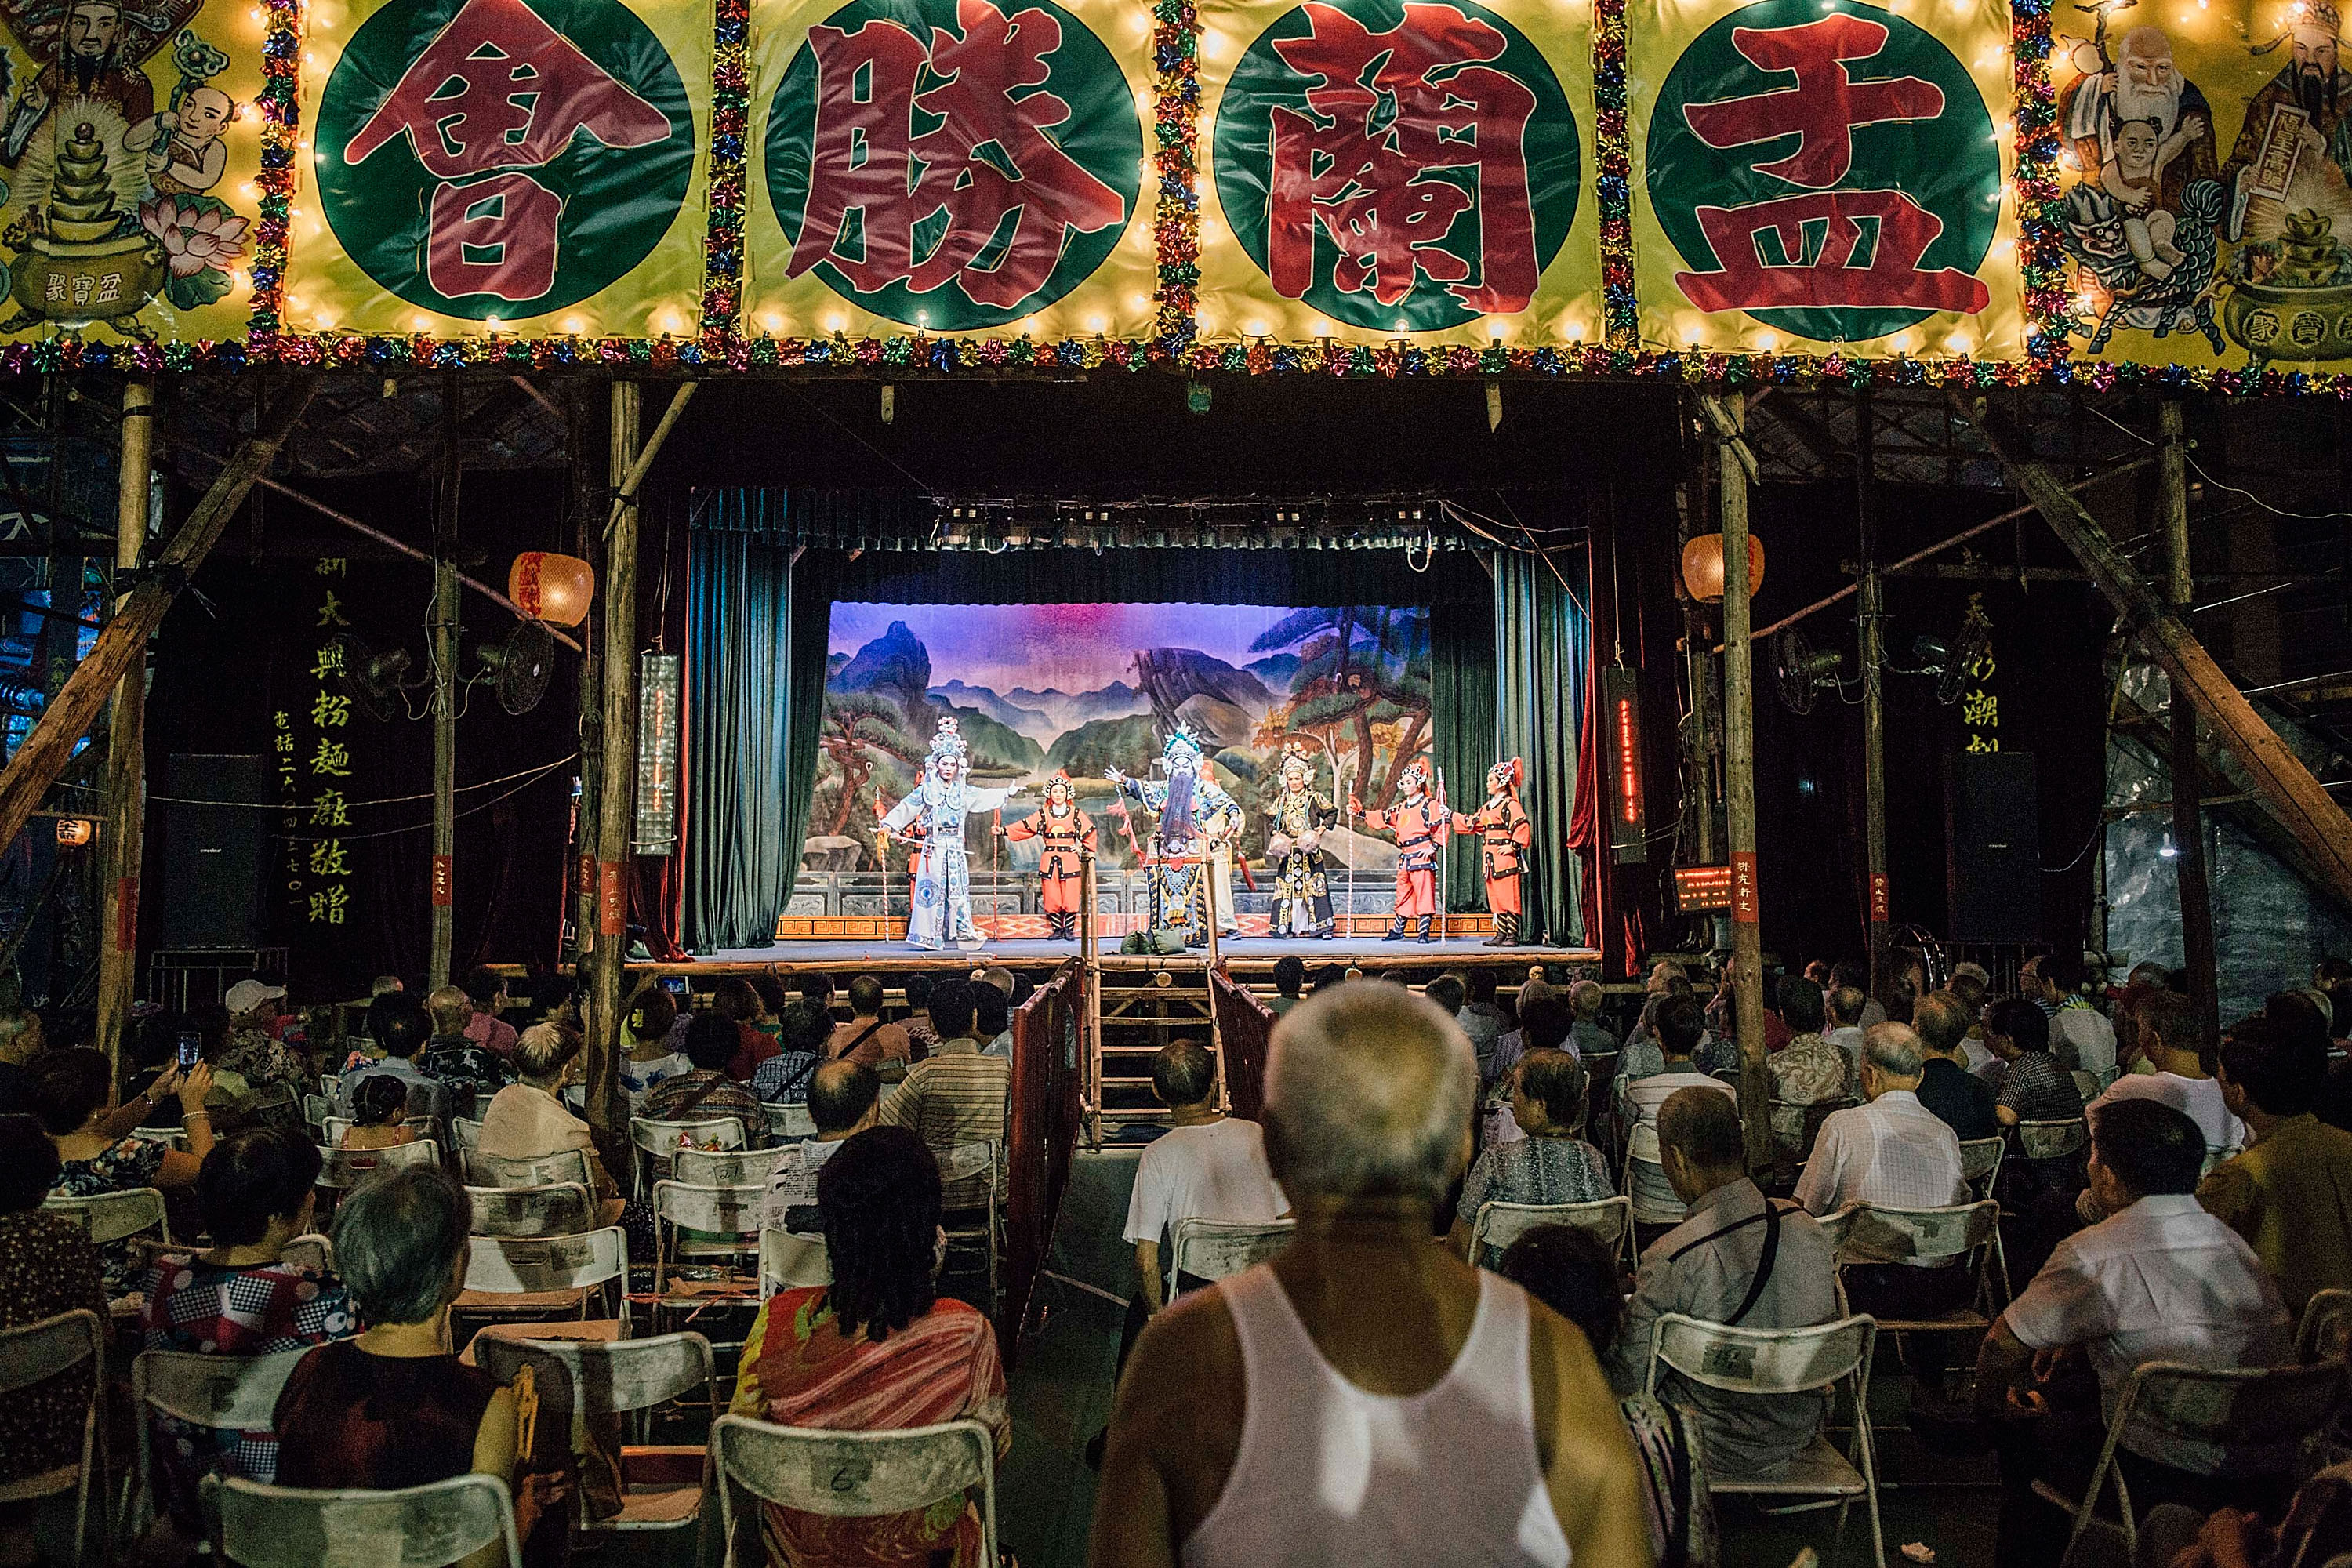 HONG KONG - AUGUST 14: Spectators watch a Chinese opera during the month of Hungry Ghost Festival (Yu Lan) on August 14, 2015 in Hong Kong. The Hungry Ghost Festival had been inscribed on to China?s third national list of intangible cultural heritage in 2011, is intrinsically linked to this Chinese practice of ancestor worship. The main activities for the festival includes paying respect to the ghosts, burning daily ware made with paper for the dead, opera for the spirits and bidding for lucky charm. (Photo by Anthony Kwan/For Hong Kong Images)